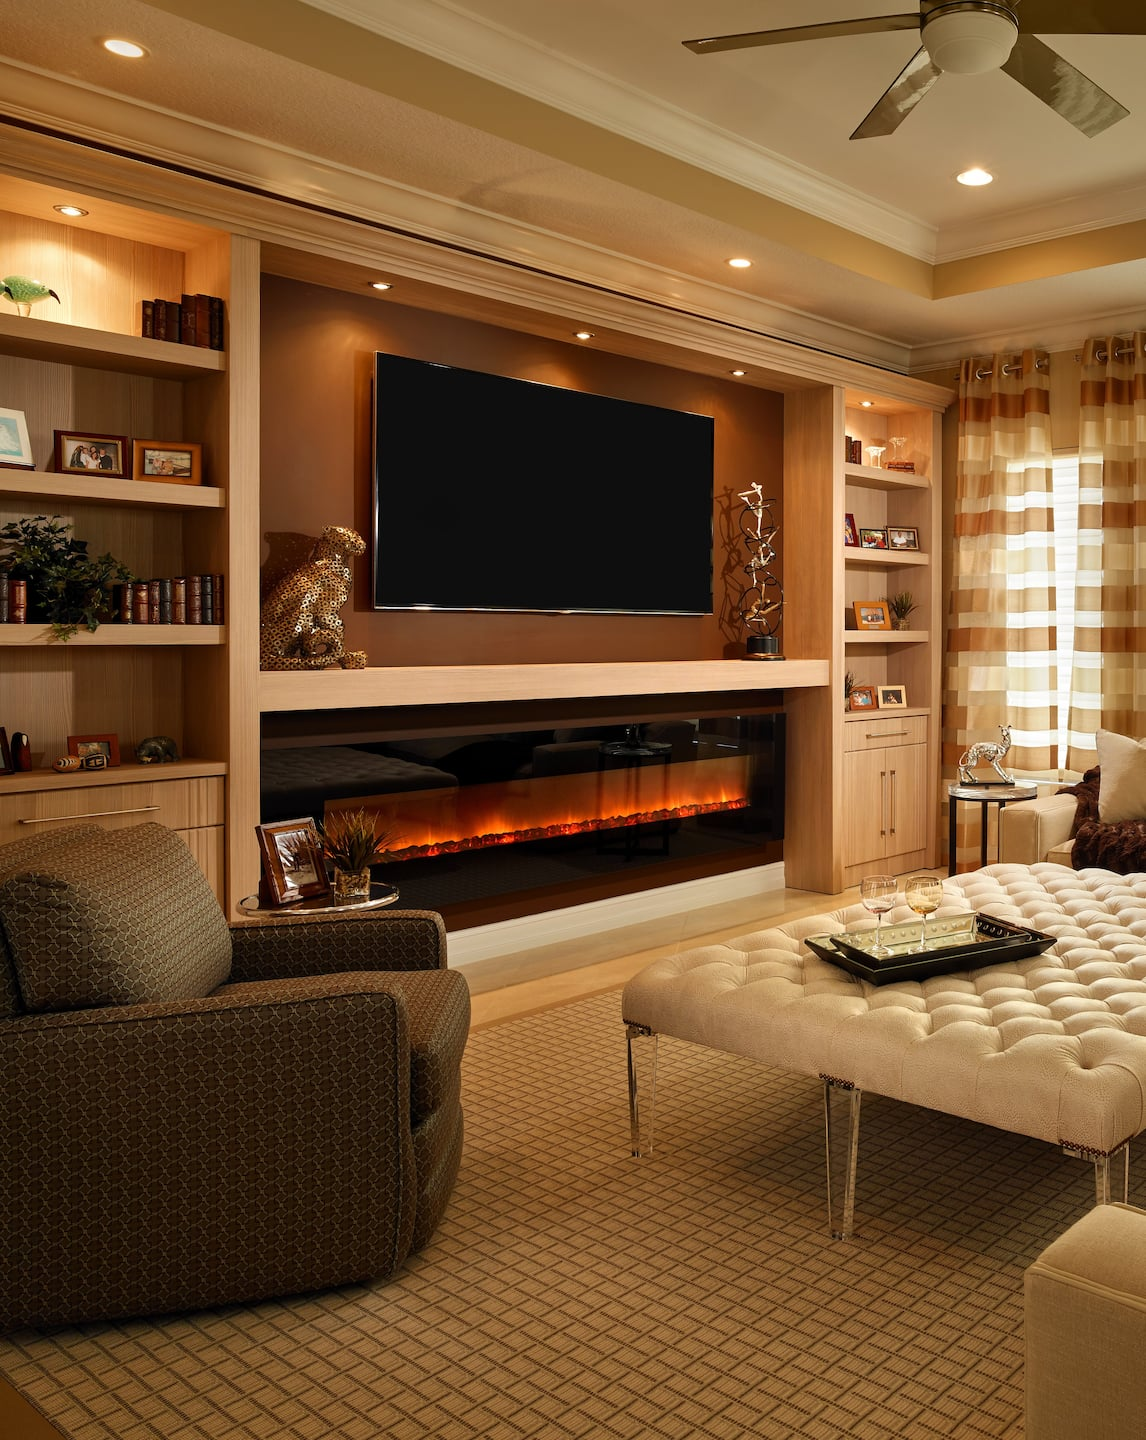 Glowing Electric Fireplace With Wood Hearth And Mantel Built In Wall Tv Mount Bookshelves